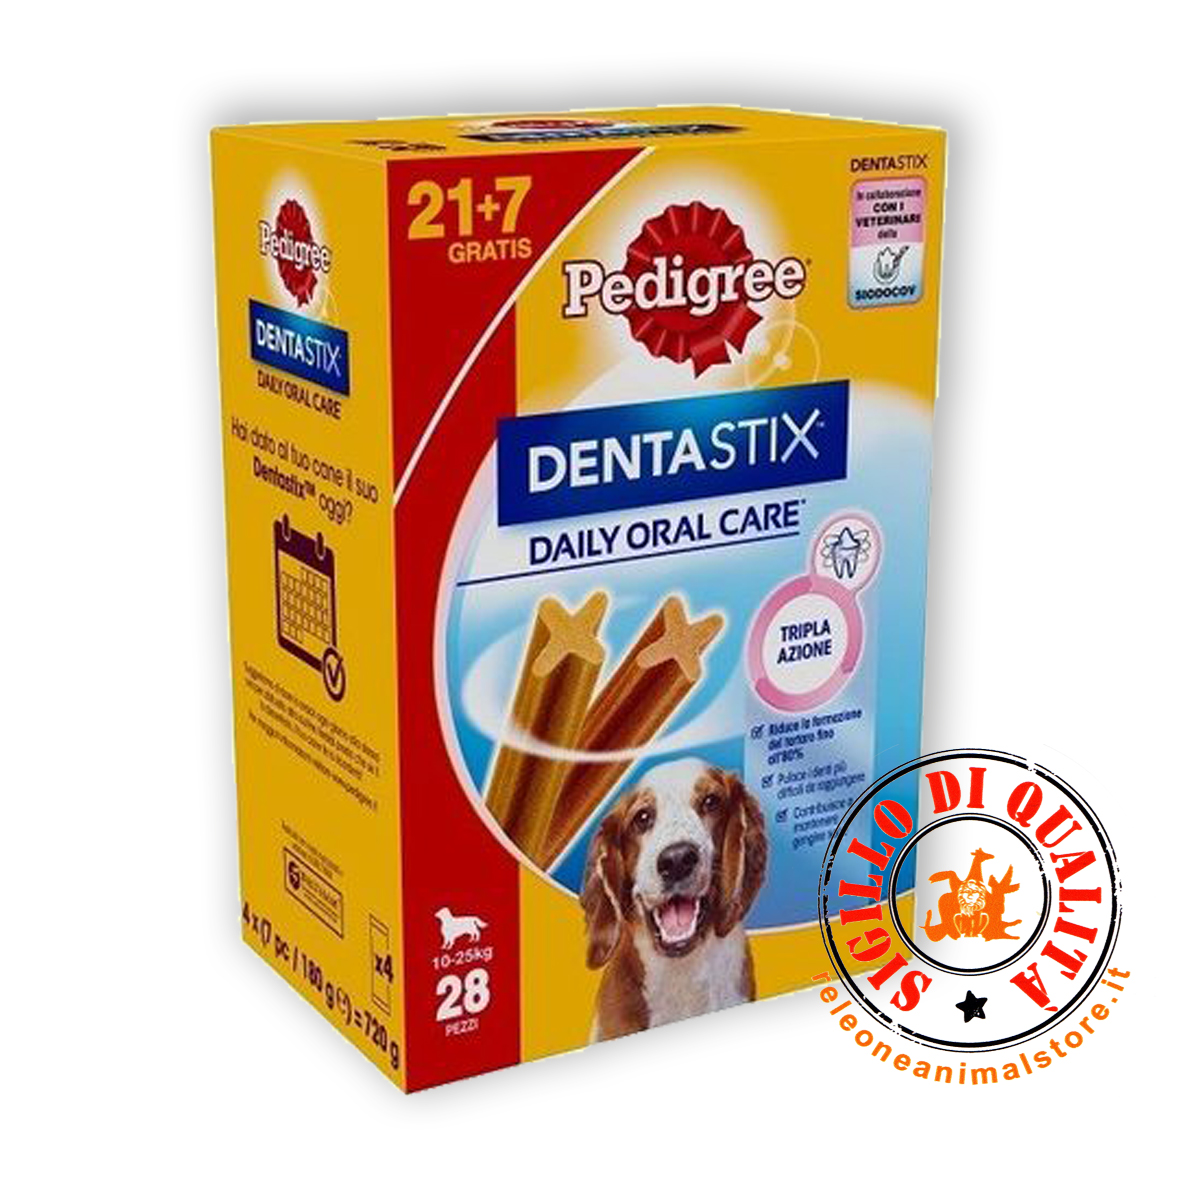 Pedigree Dentastix Snack per cane igiene orale - Medium 10 - 25 Kg